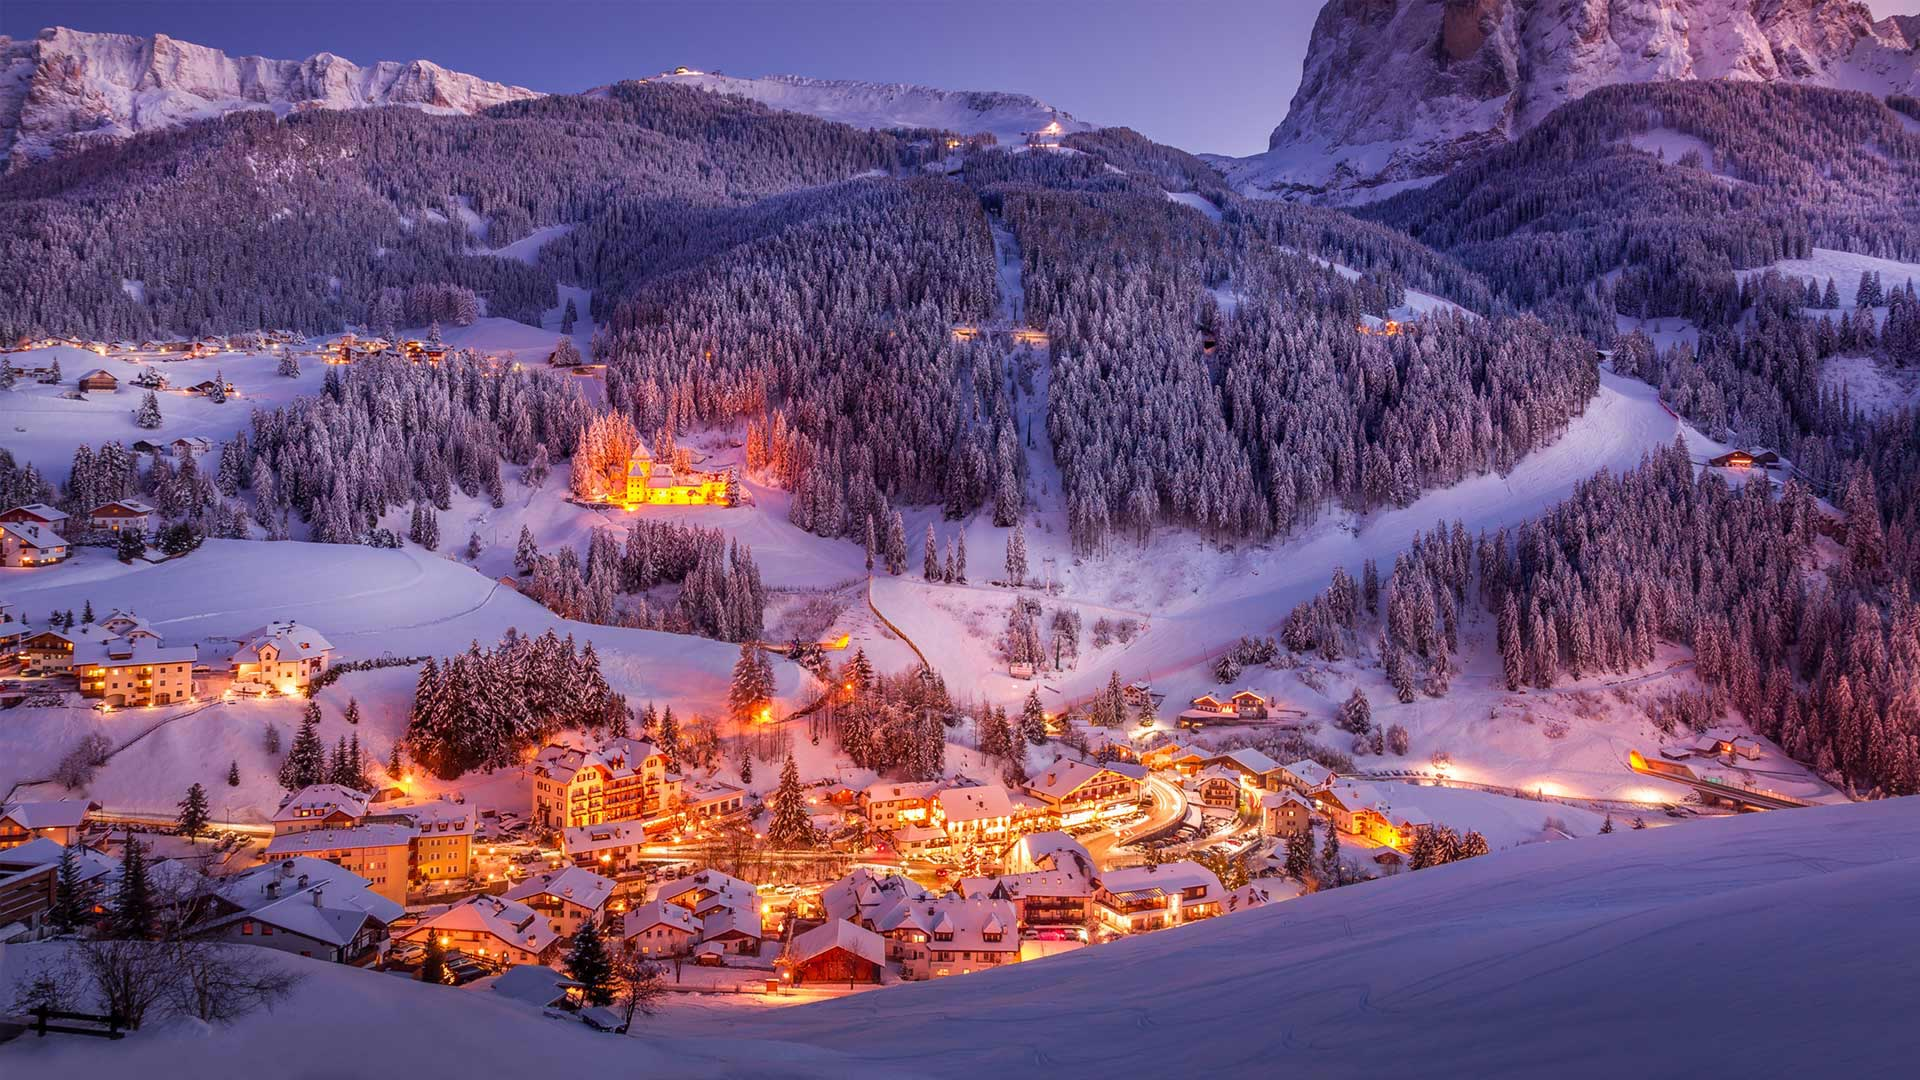 Sunset in Val Gardena in the Dolomites of South Tyrol, Italy (© Marco Capellari/Getty Images)(Bing United States)